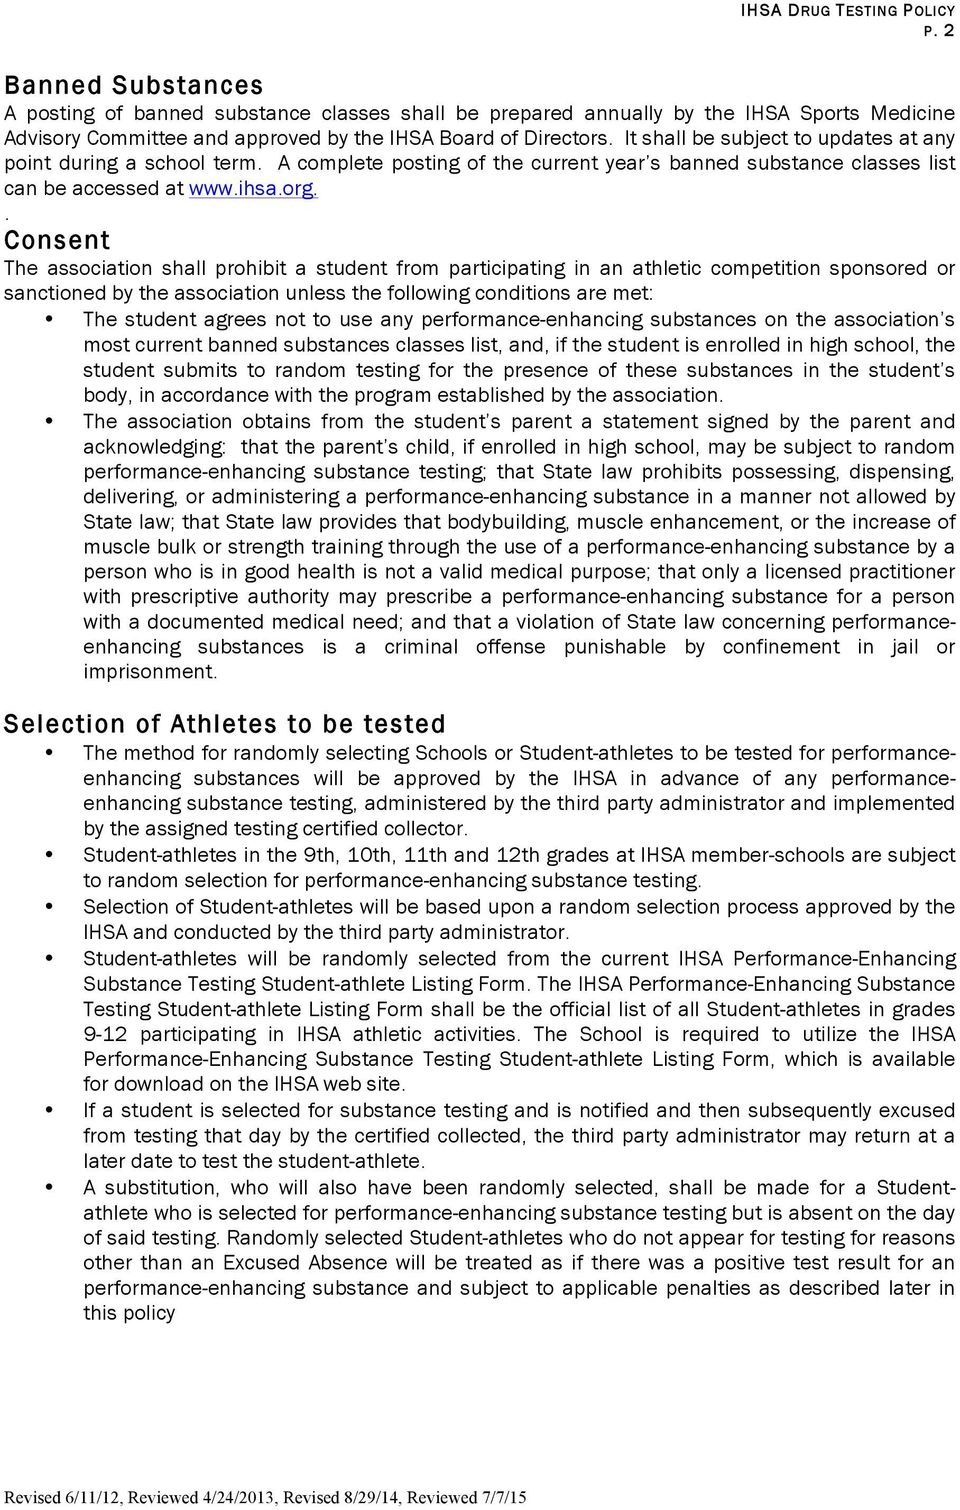 . Consent The association shall prohibit a student from participating in an athletic competition sponsored or sanctioned by the association unless the following conditions are met: The student agrees